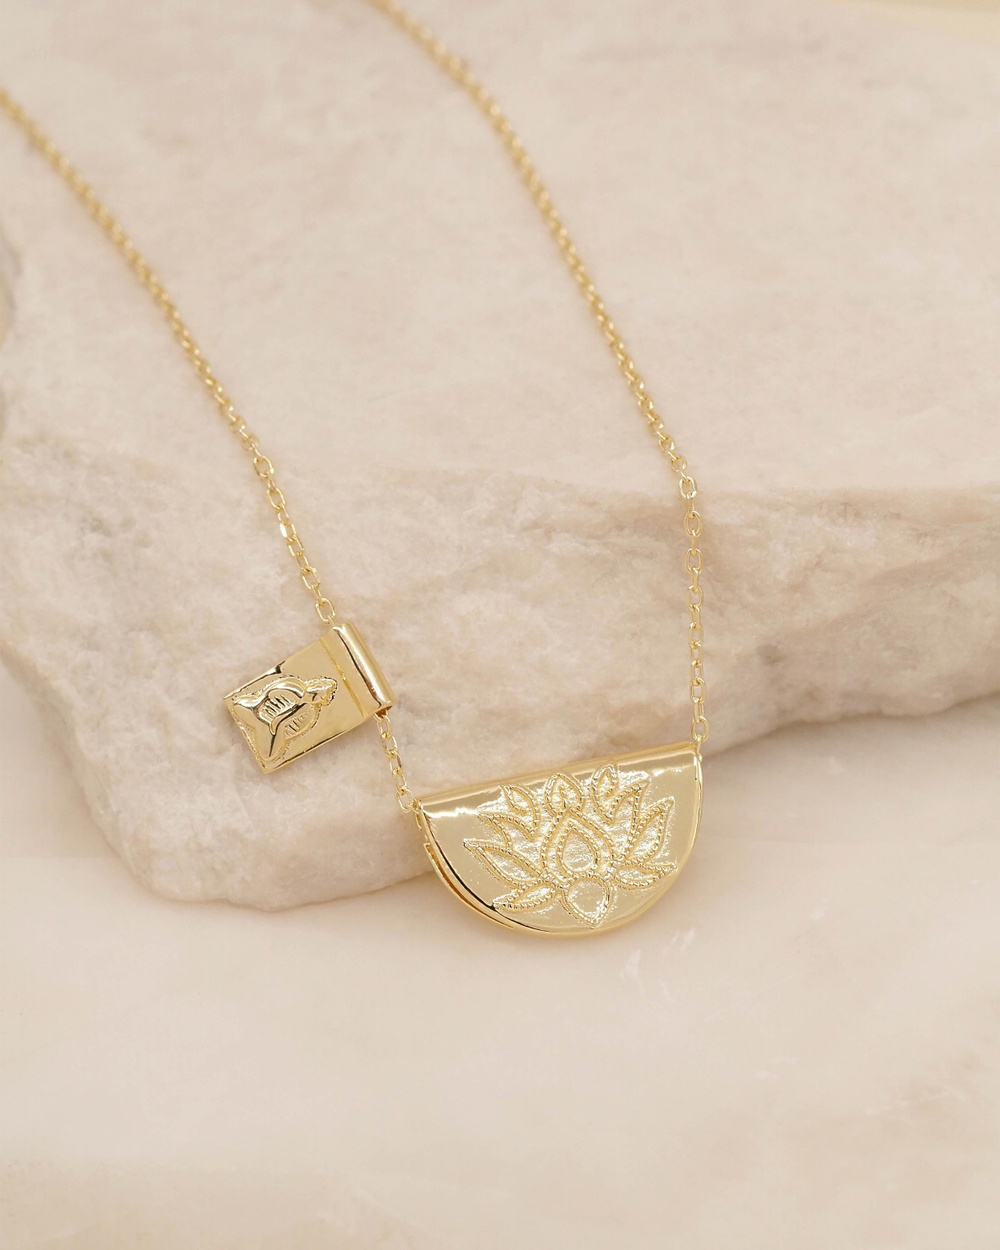 By Charlotte Lotus Little Buddha Short Gold Pendant Necklace Jewellery Gold